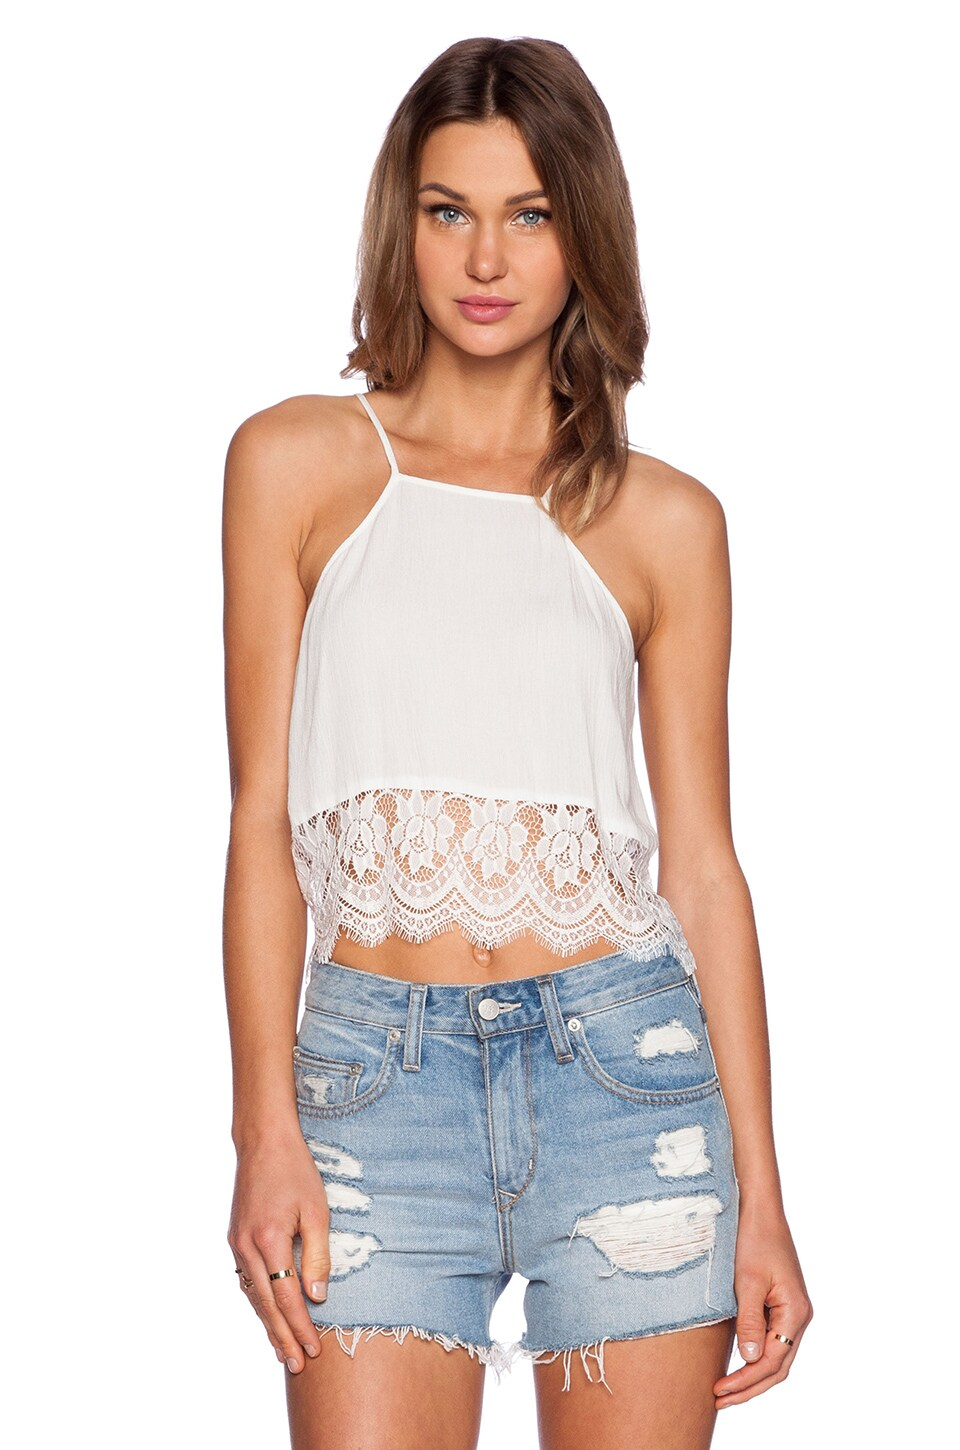 MINKPINK Beachside Breeze Halter Crop Top in White